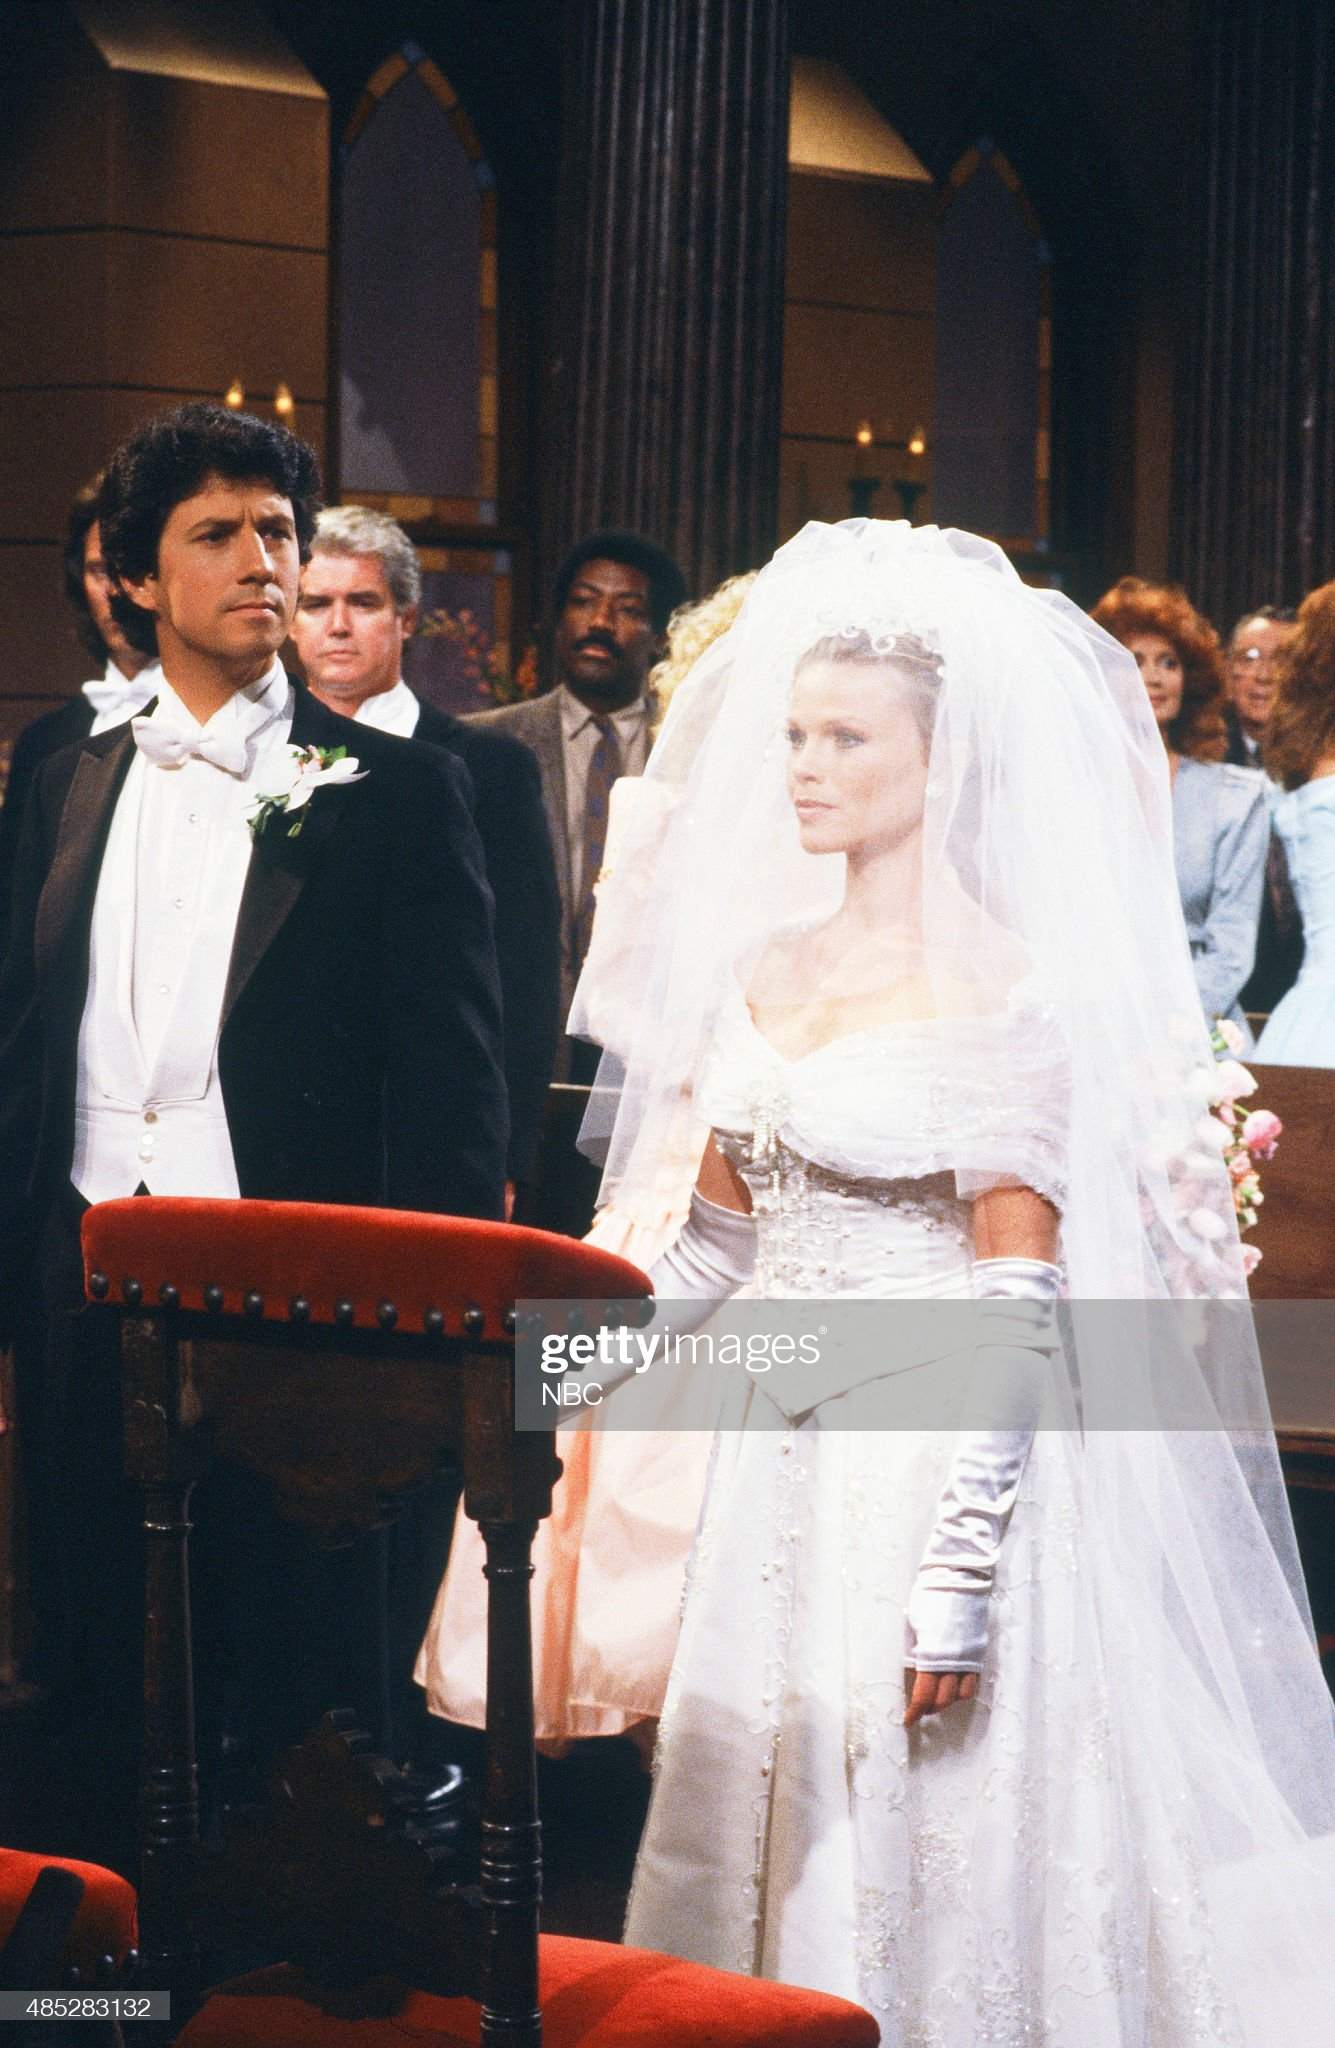 kimberly-brady-shane-donovan-wedding-pictured-charles-shaughnessy-as-picture-id485283132